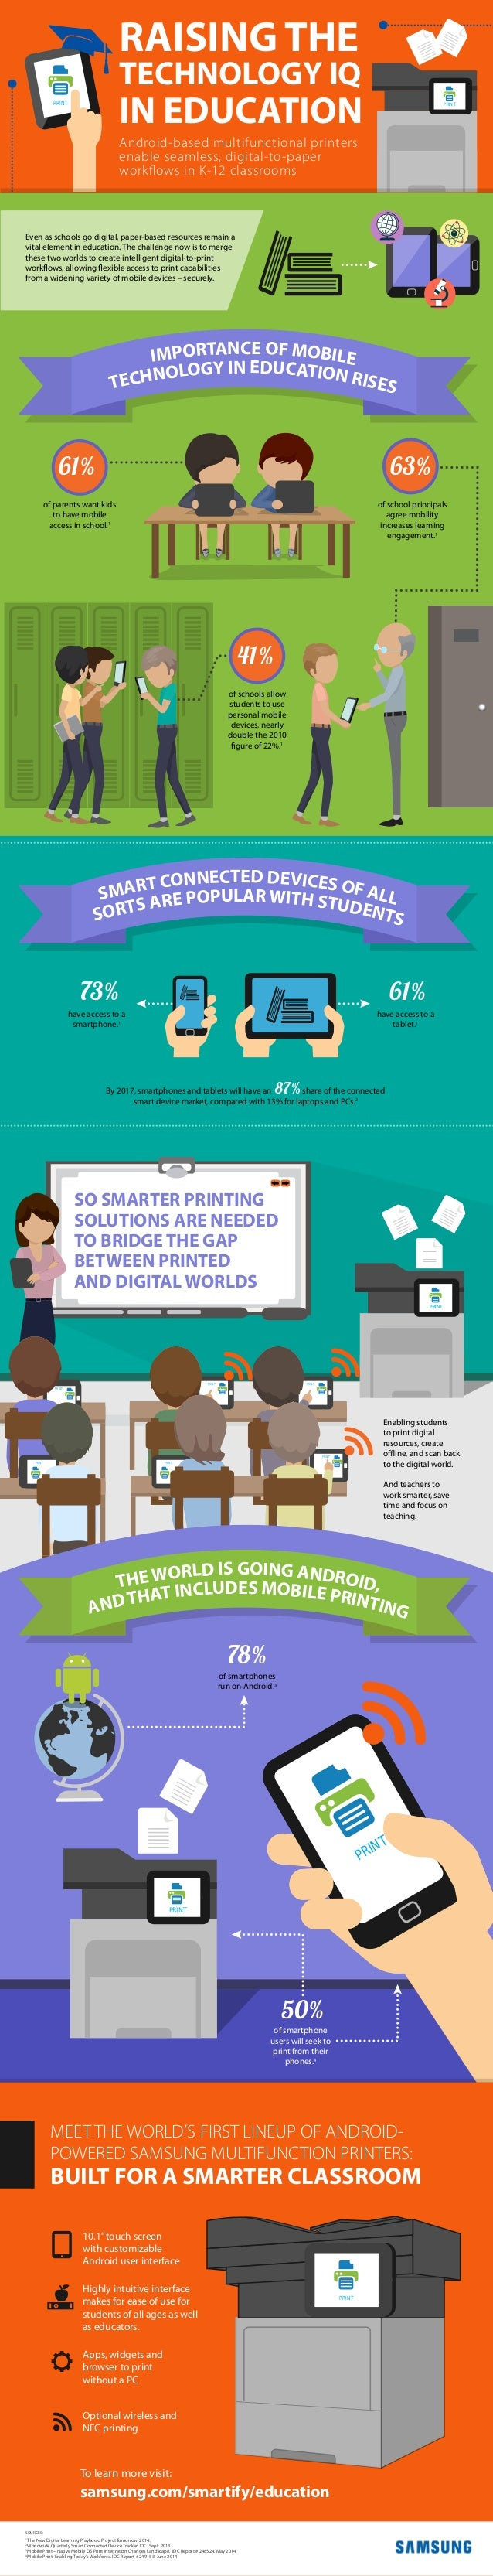 PRINT PRINT PRINT PRINT PRINTPRINT RAISING THE TECHNOLOGY IQ Android-based multifunctional printers enable seamless, digit...